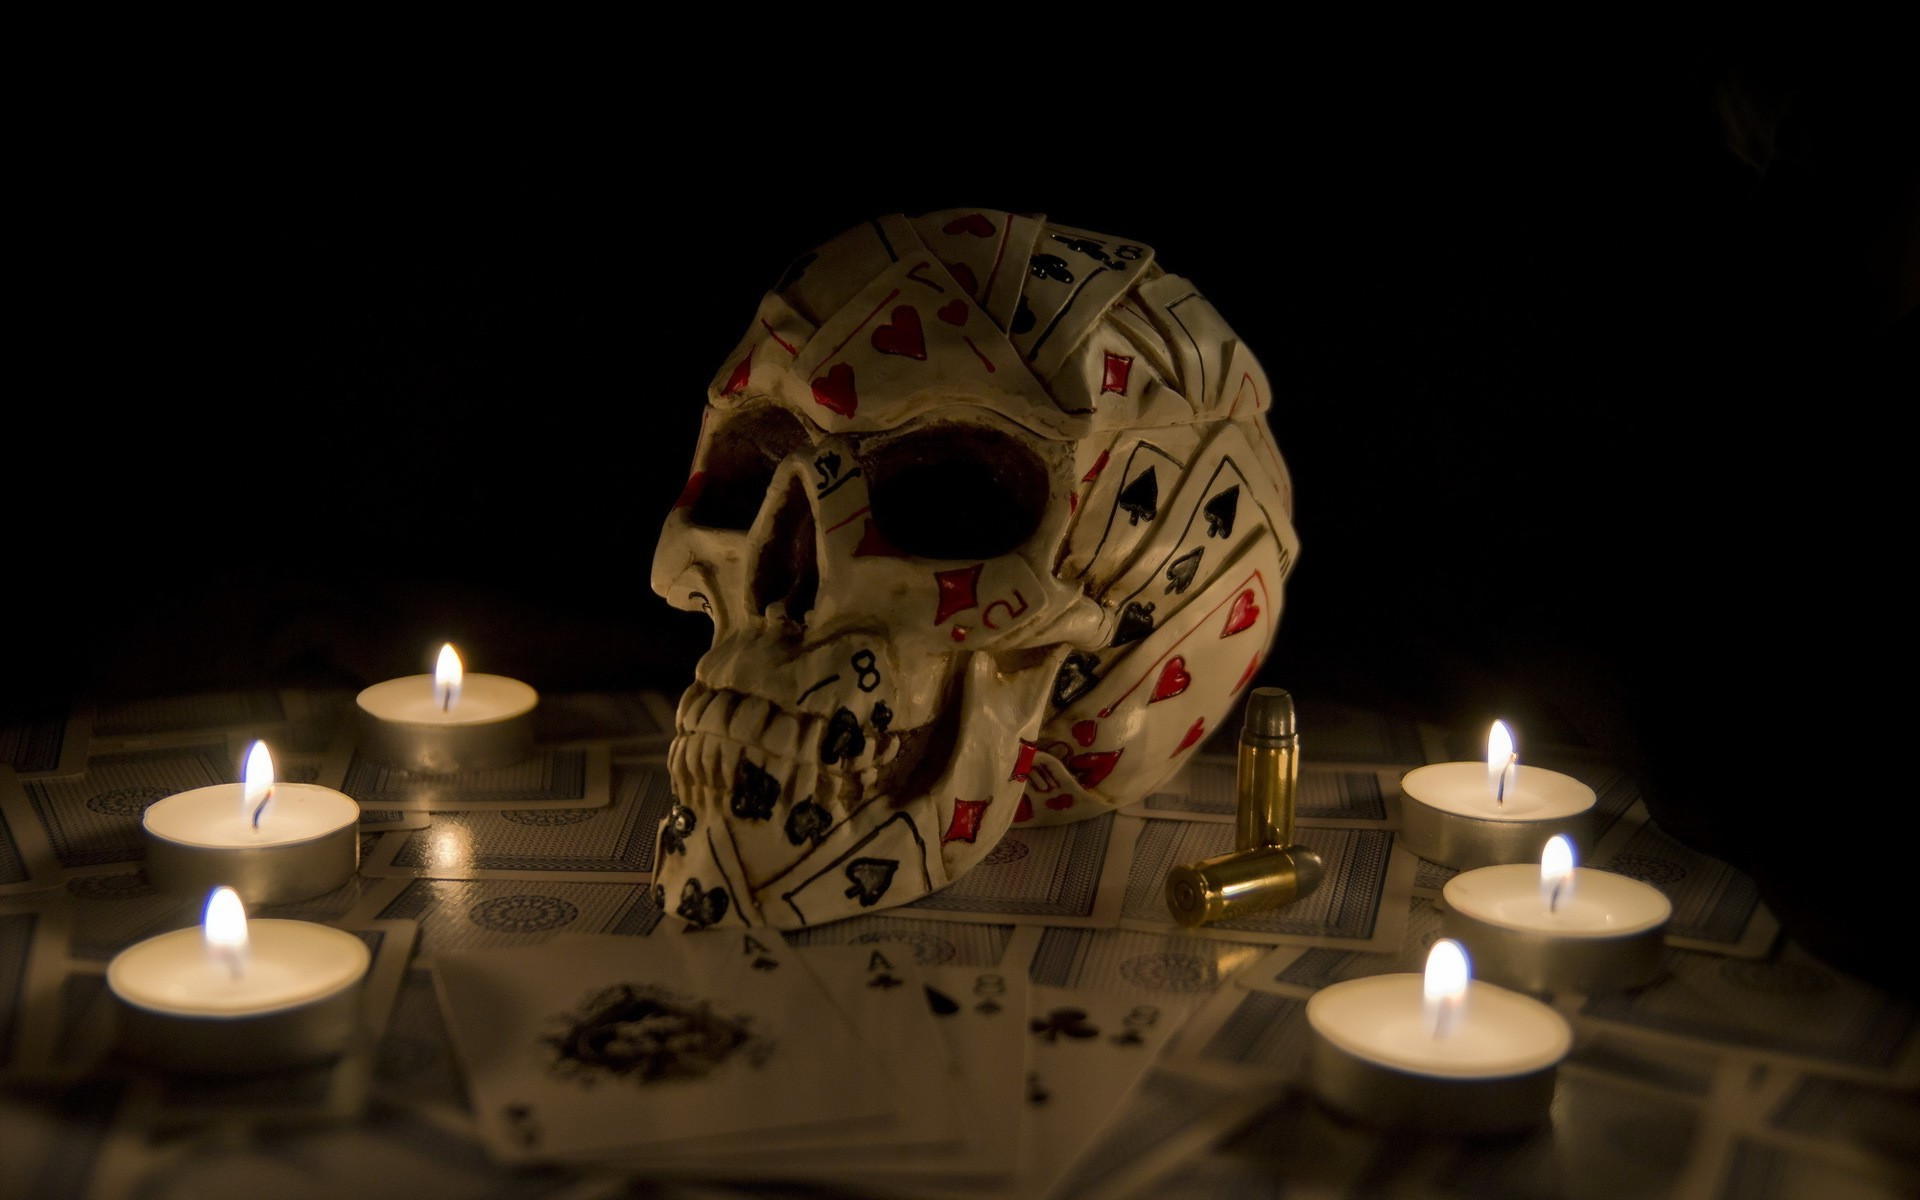 artwork, fantasy art, skull, playing cards, candles wallpapers hd